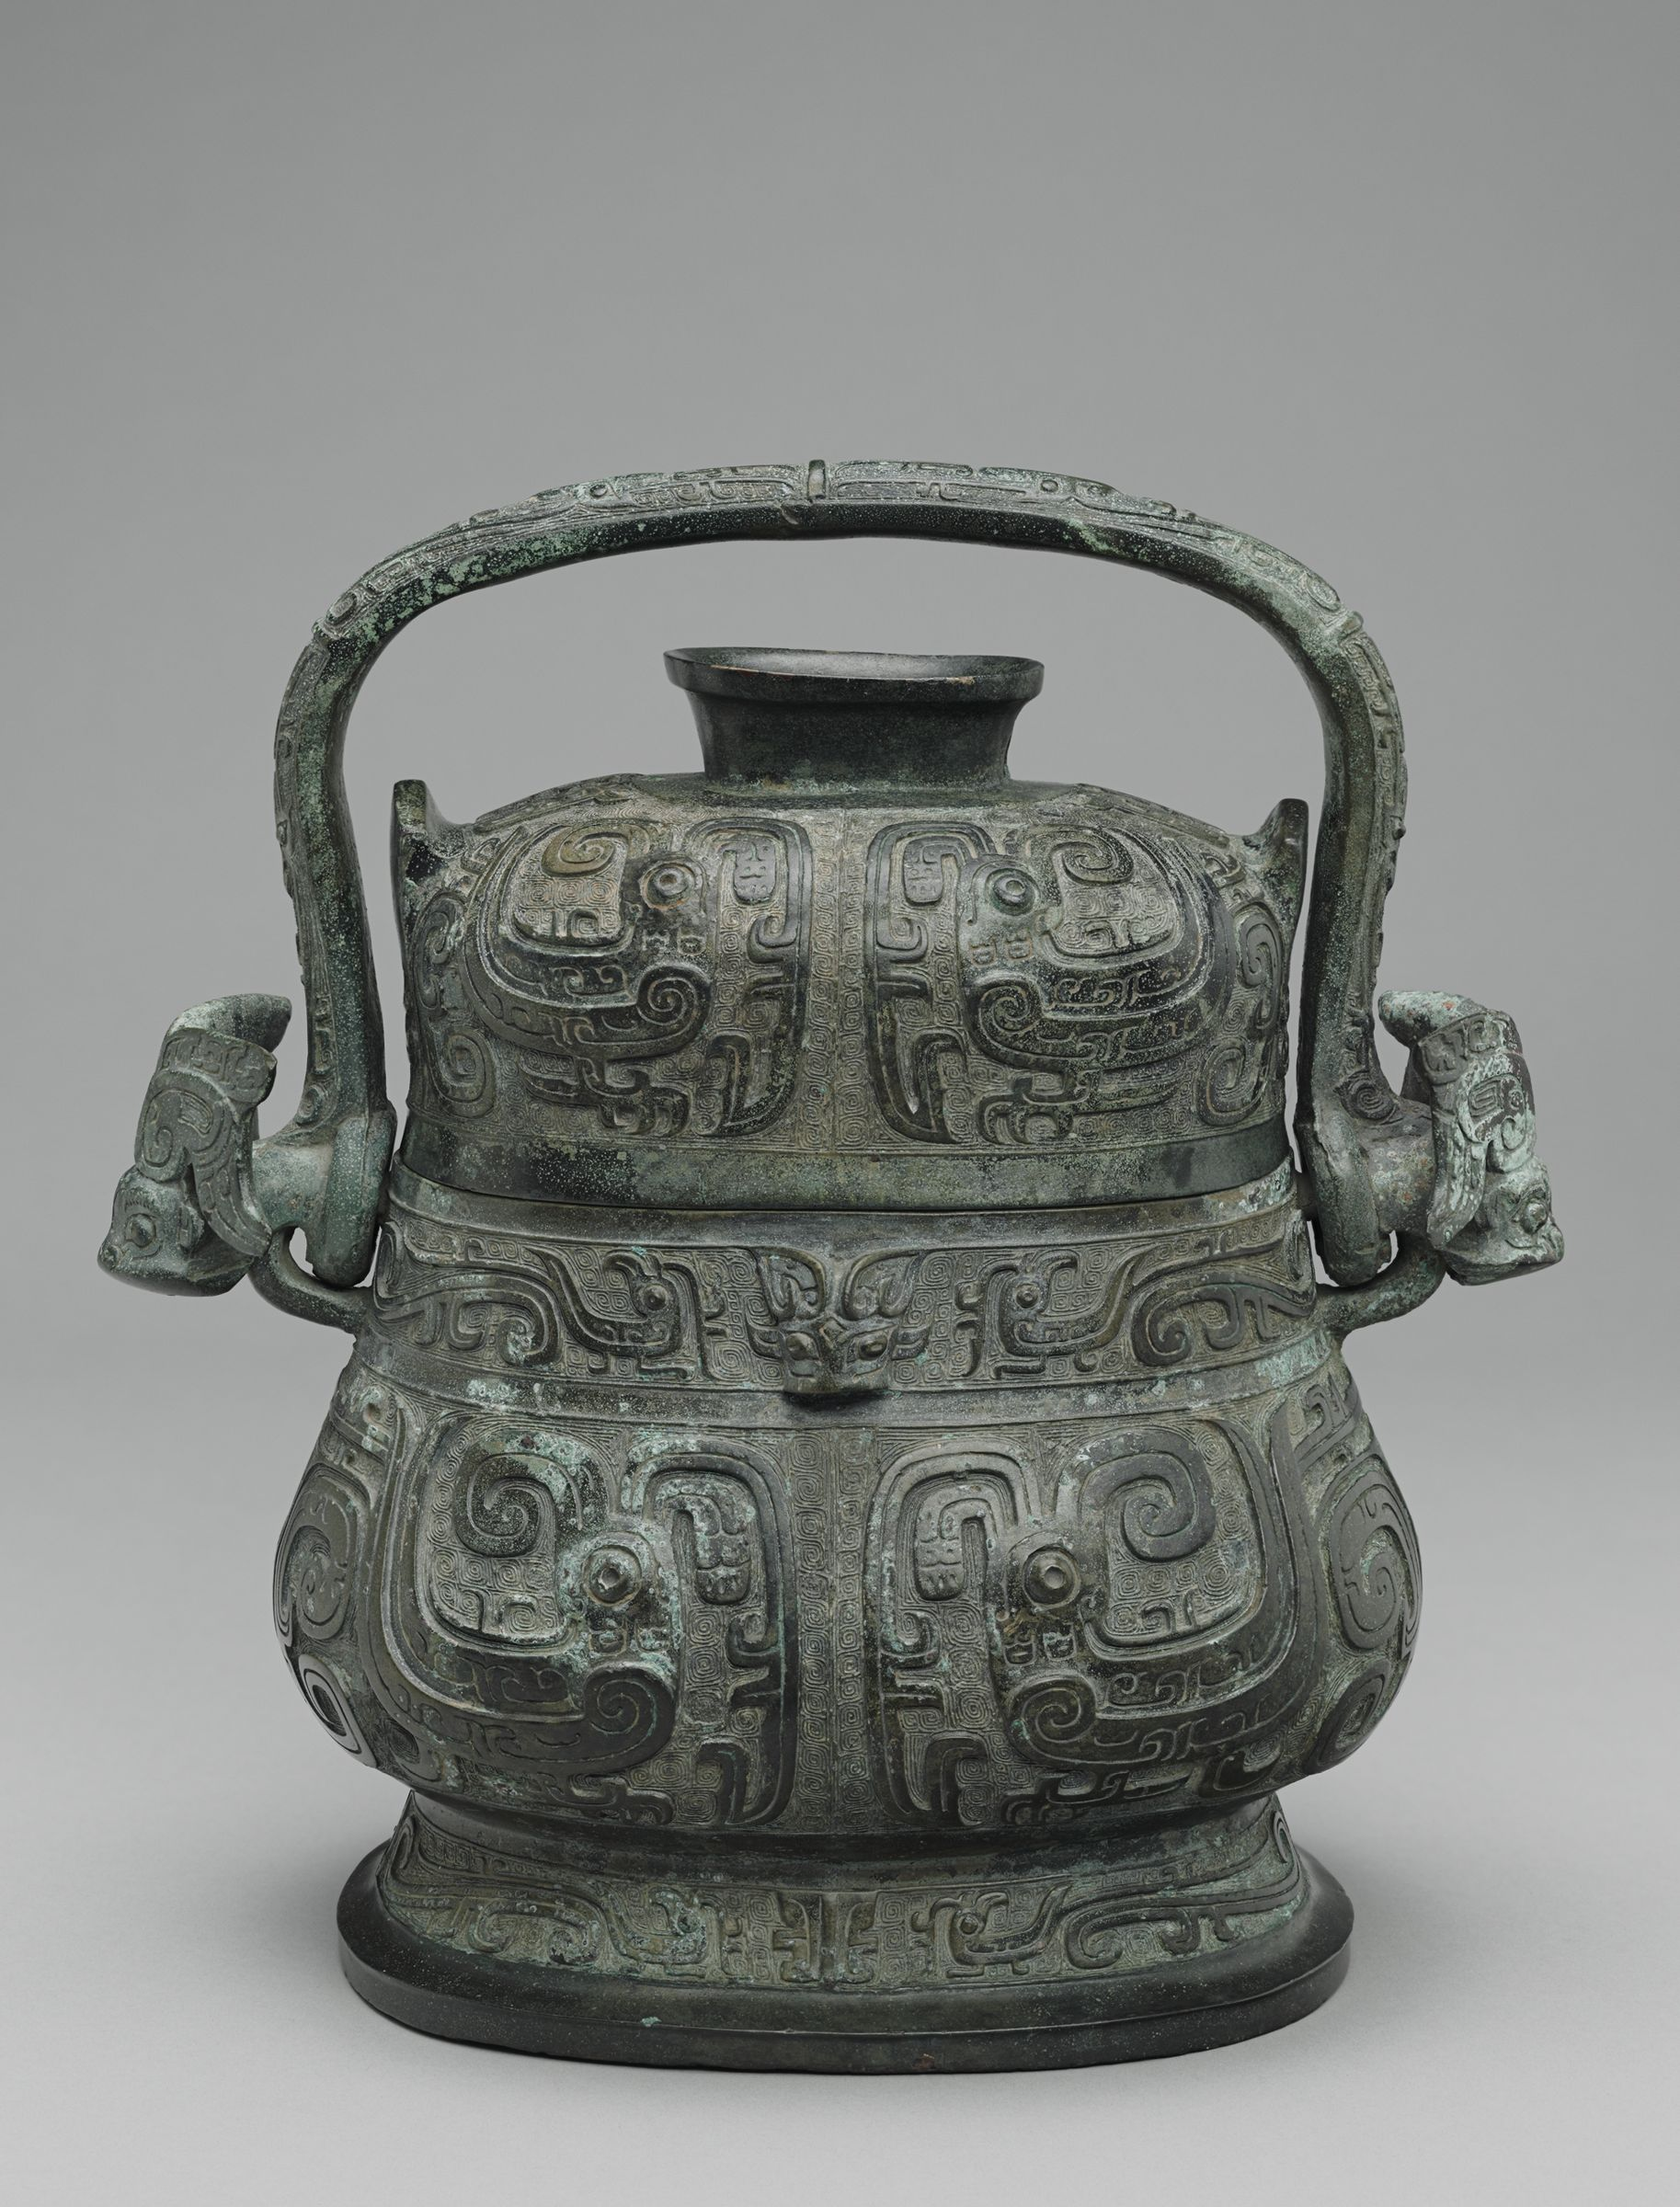 'you' Covered Ritual Wine Vessel With Decoration Of Confronting Birds